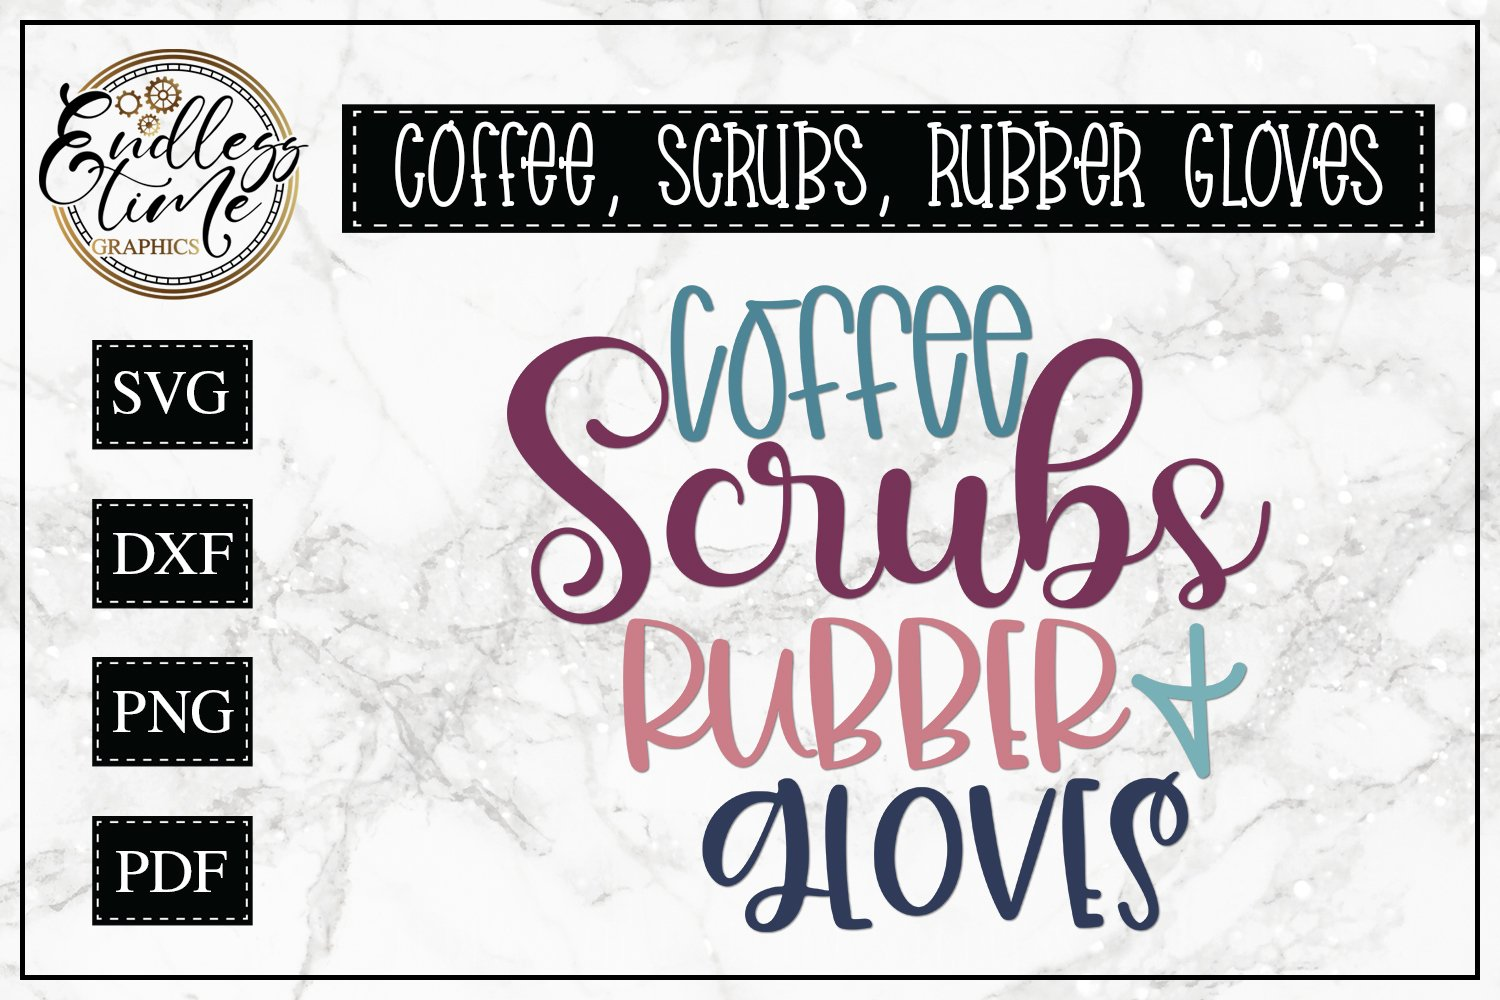 Coffee Scrubs and Rubber Gloves - An SVG Design For Nurses example image 1